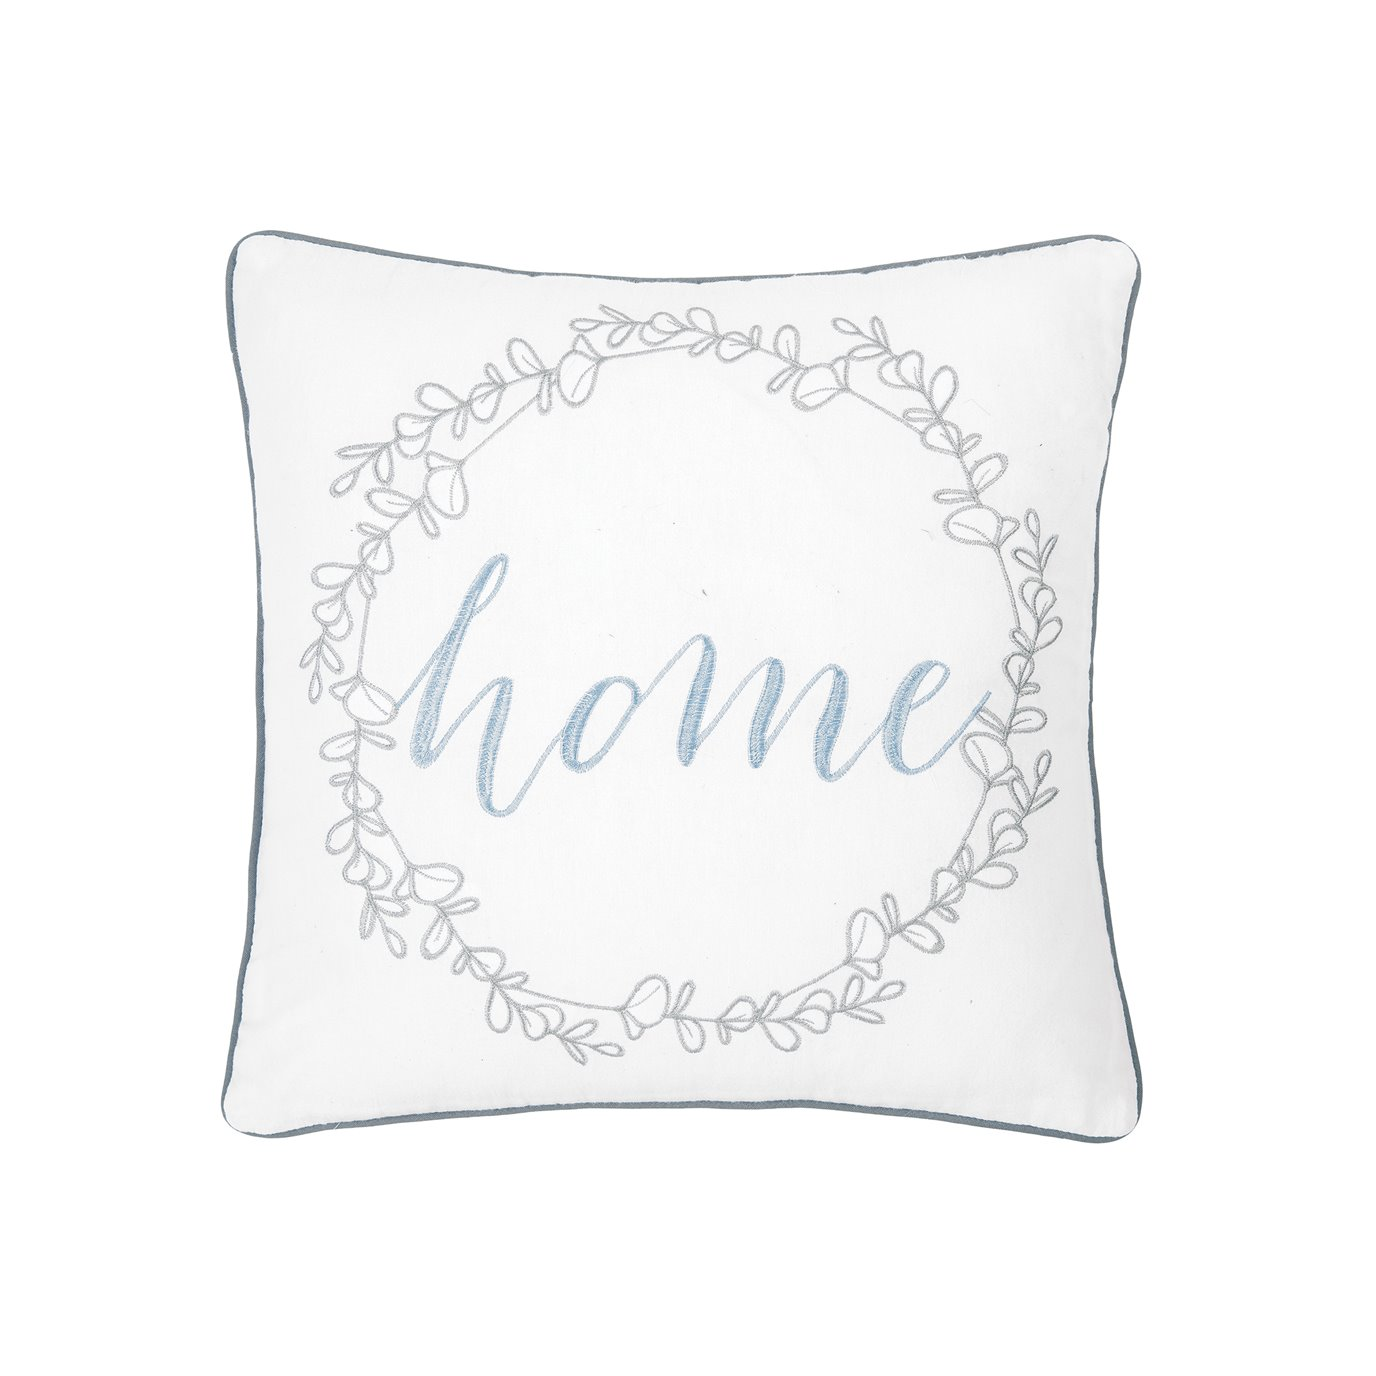 Embroidered Home Wreath Pillow